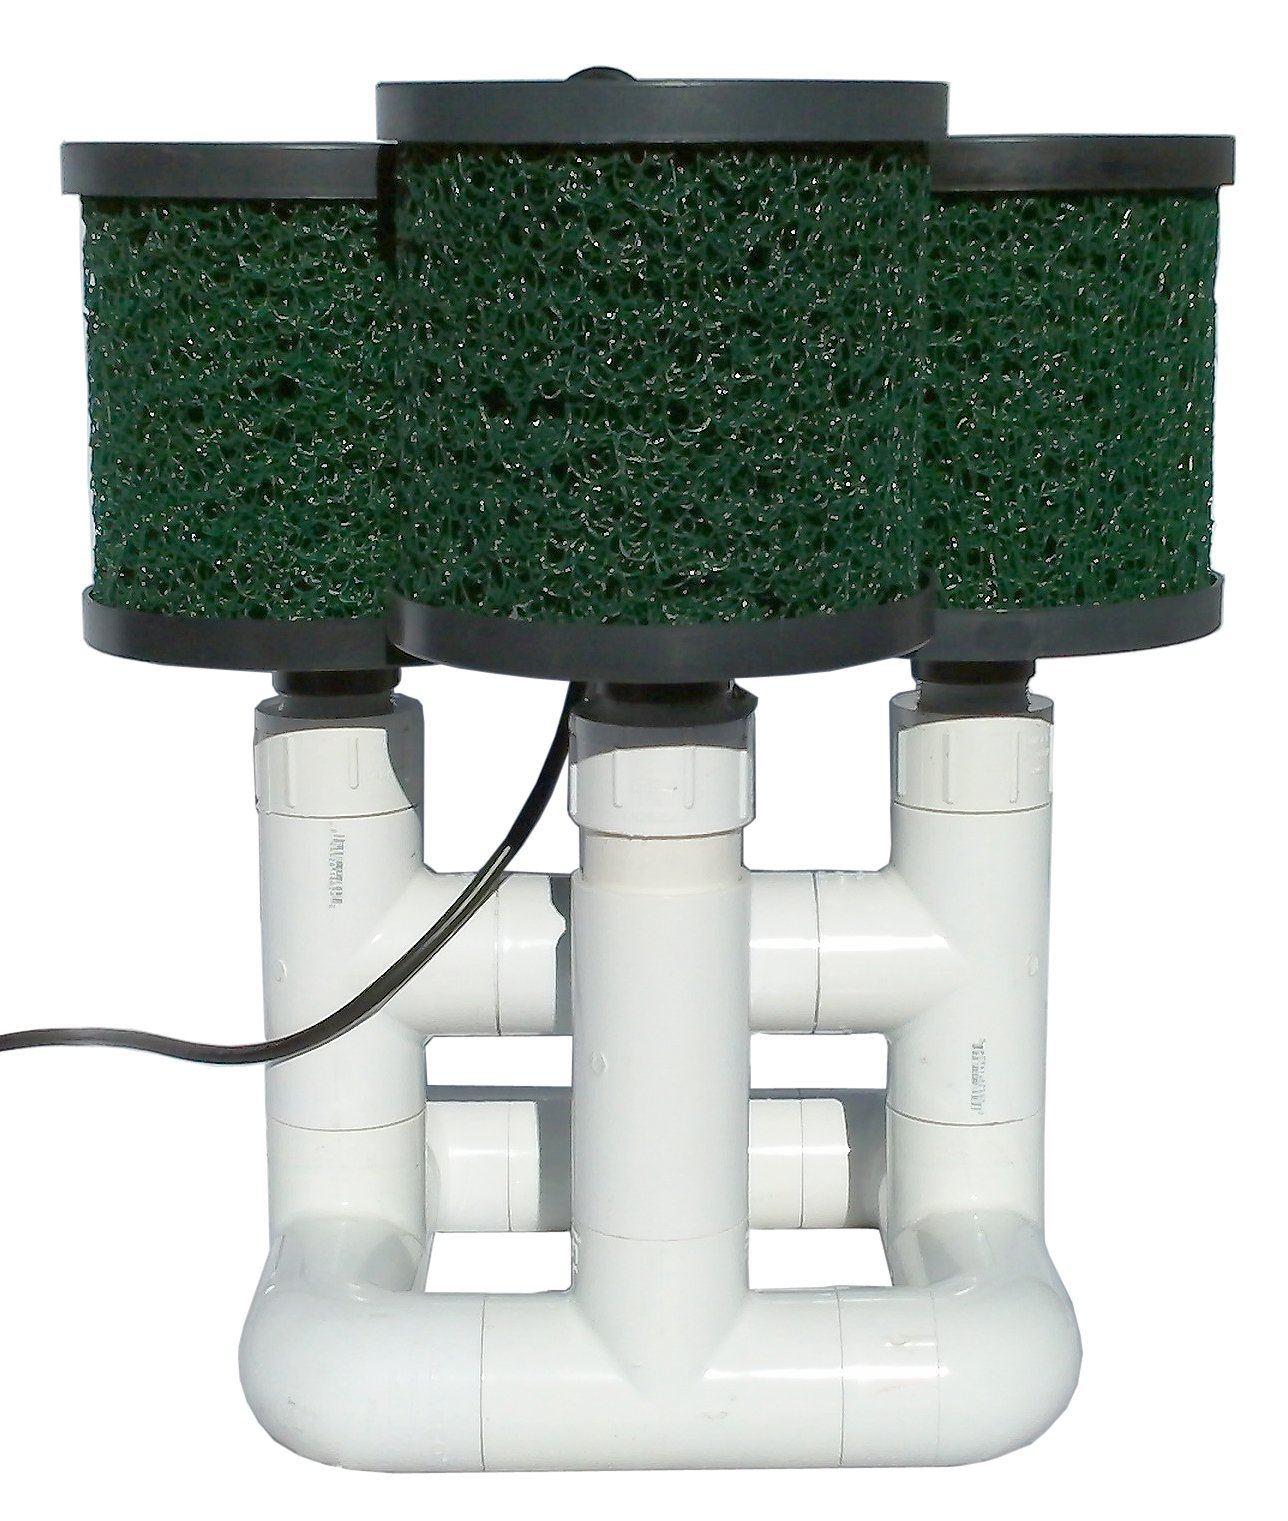 Natural Current Savior Bottom Feeder Pond Open Power Pump and Filter System, 120-watt by Natural Current (Image #1)